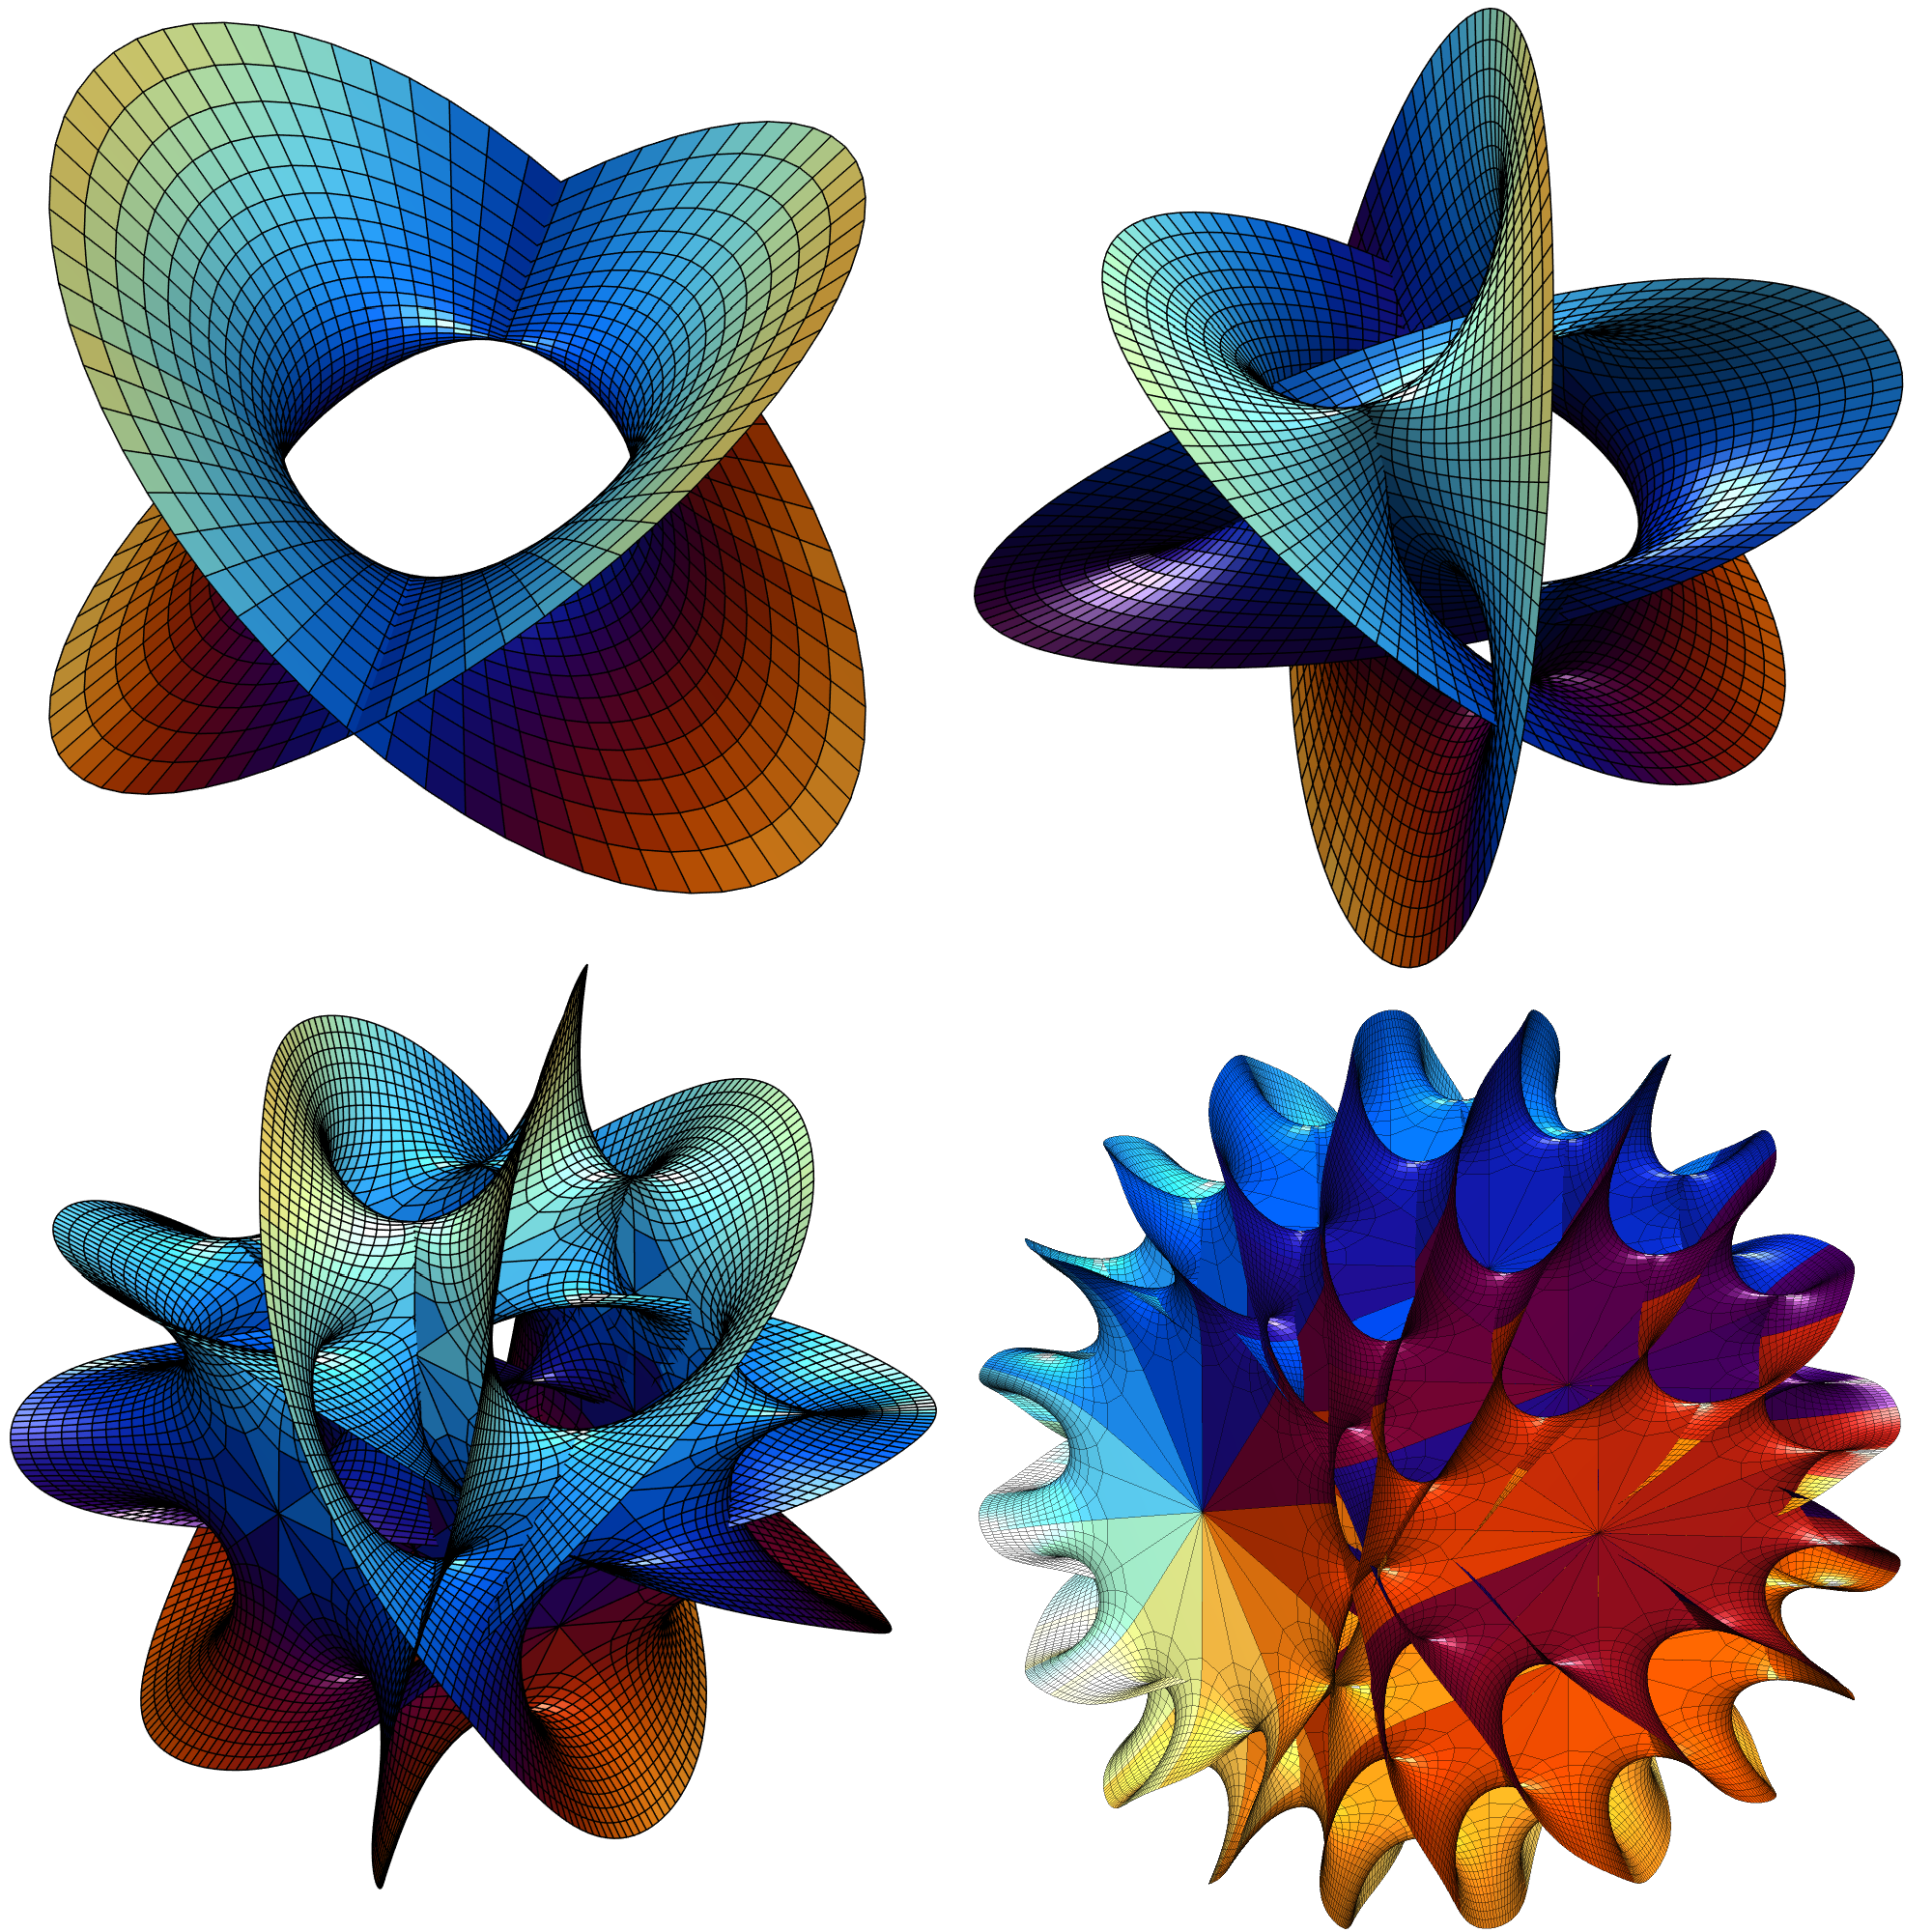 Hanson's Calabi-Yau surface for N=2, N=3, N=5 and N=8.